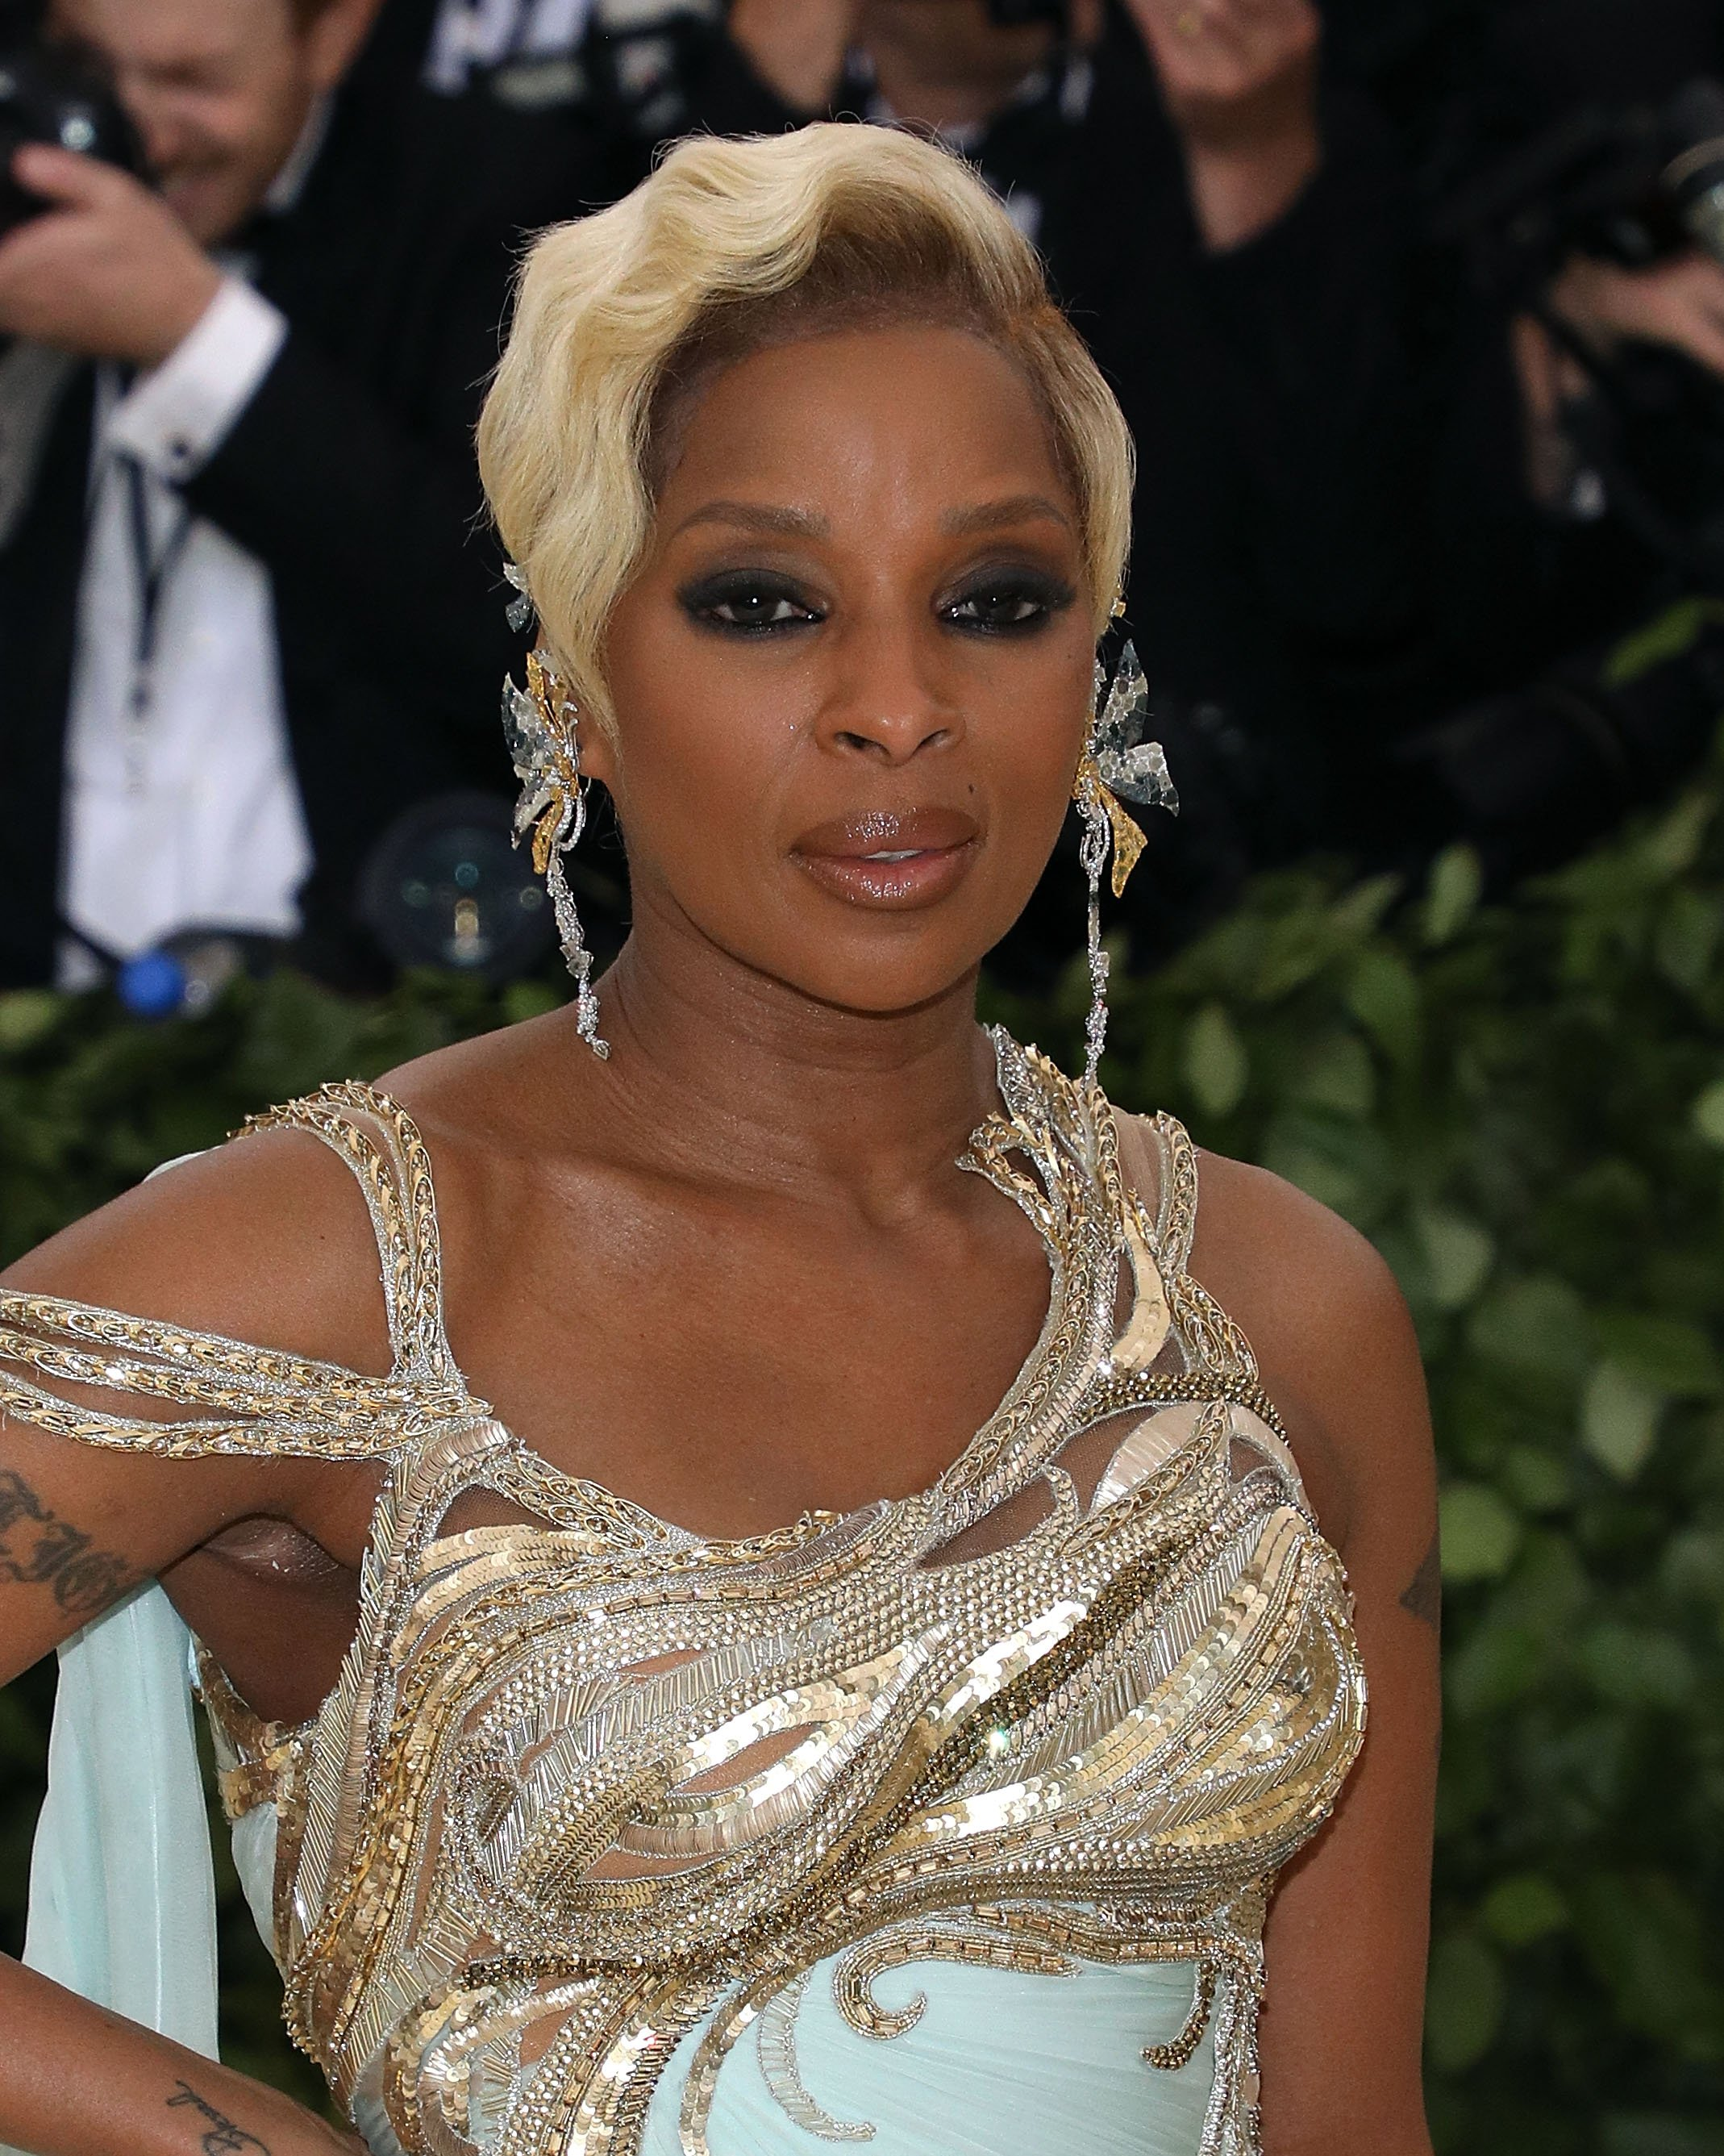 Mary J. Blige at the 2018 Costume Institute Benefit at Metropolitan Museum of Art on May 7, 2018 in New York City. | Source: Getty Images